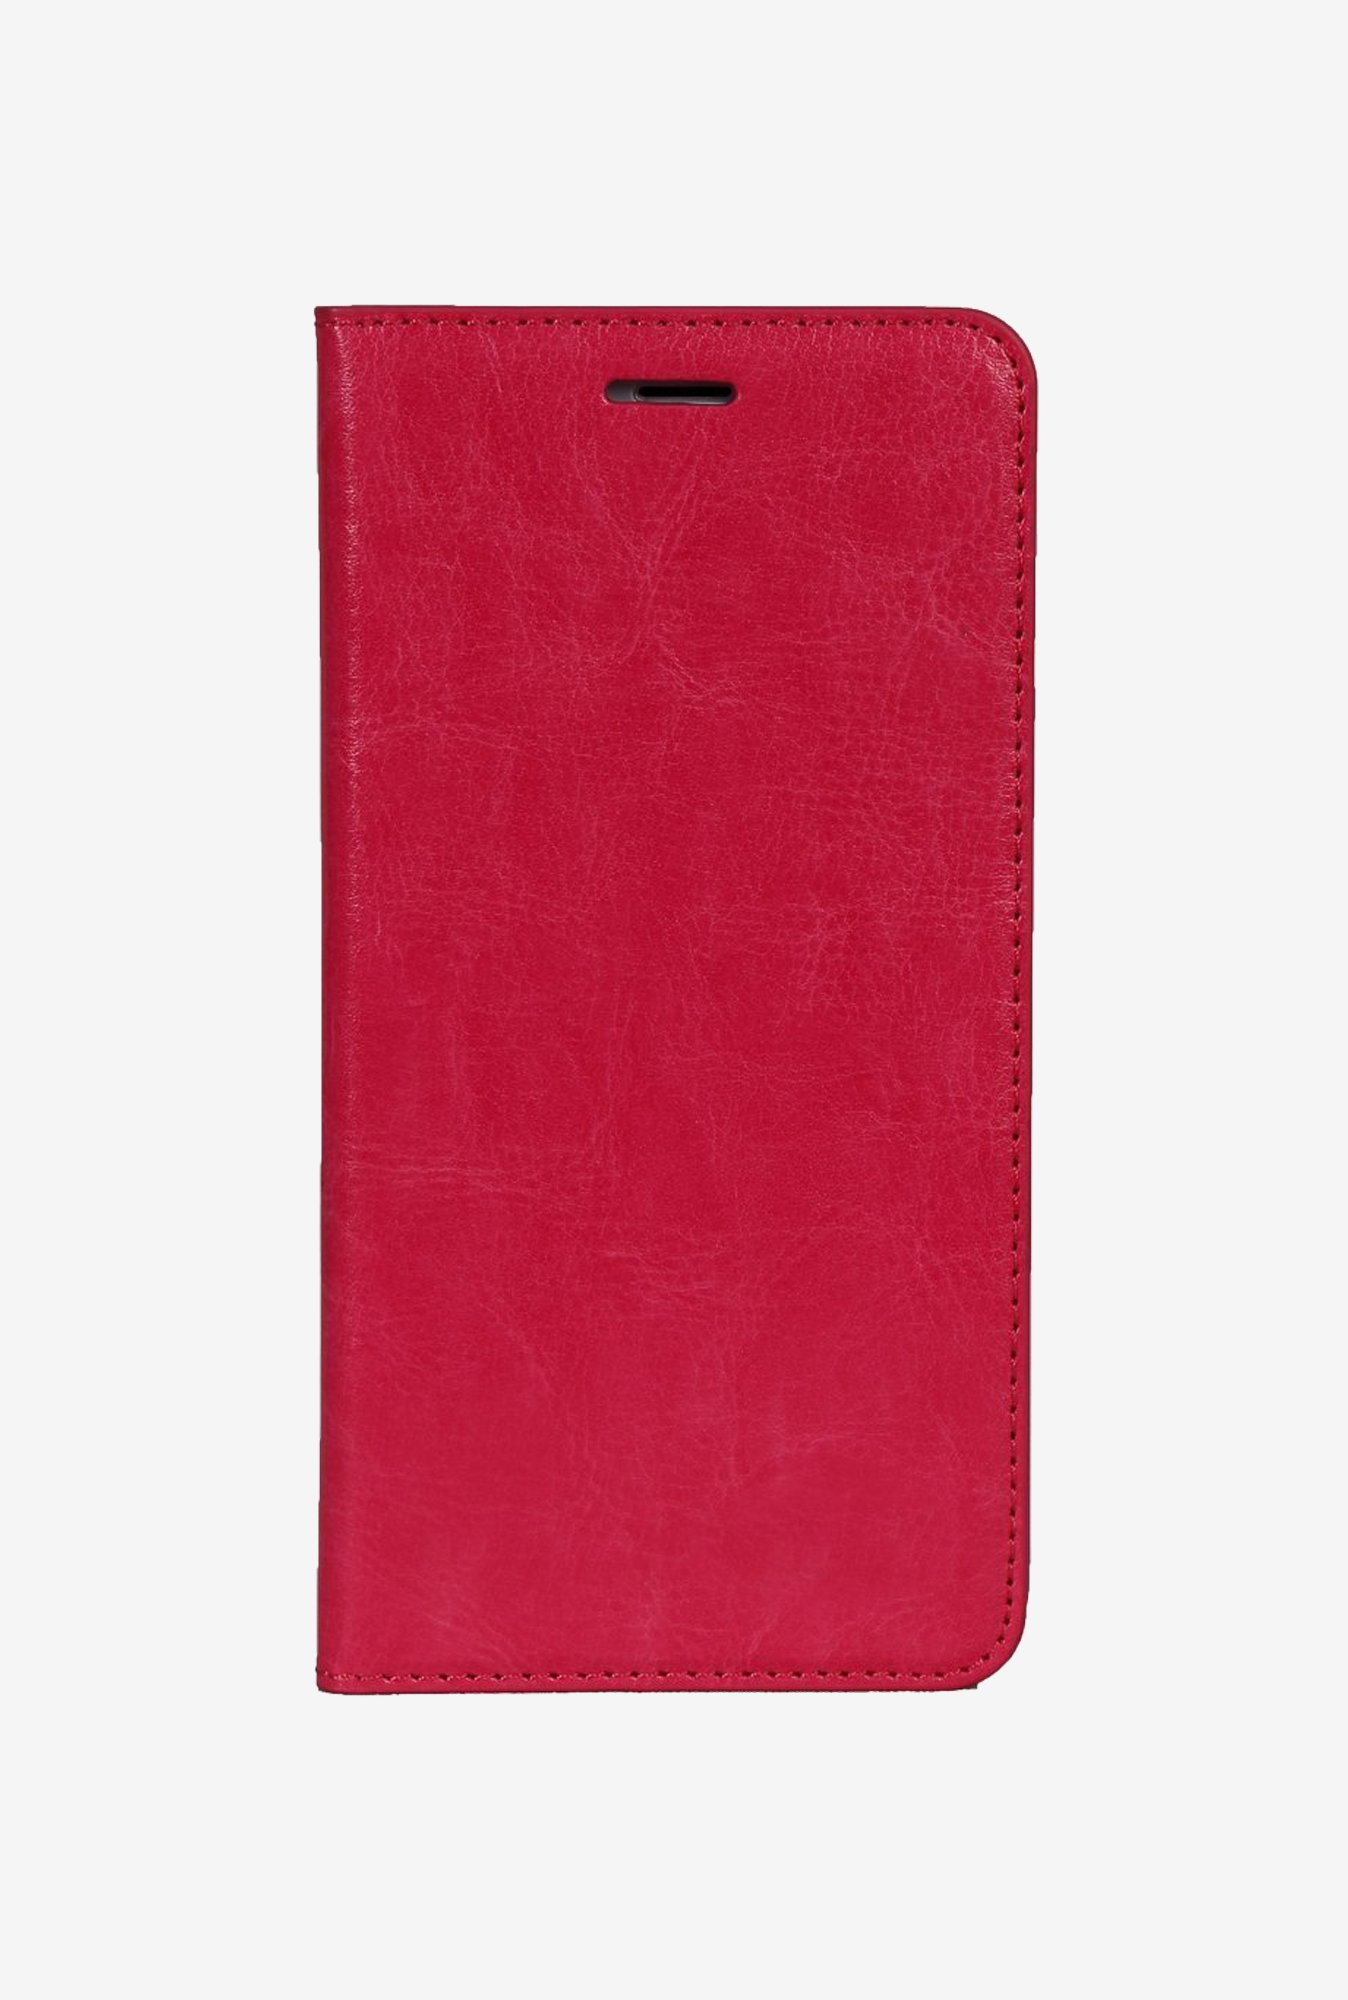 iAccy IP6015 Wallet Case Pink for iPhone 6